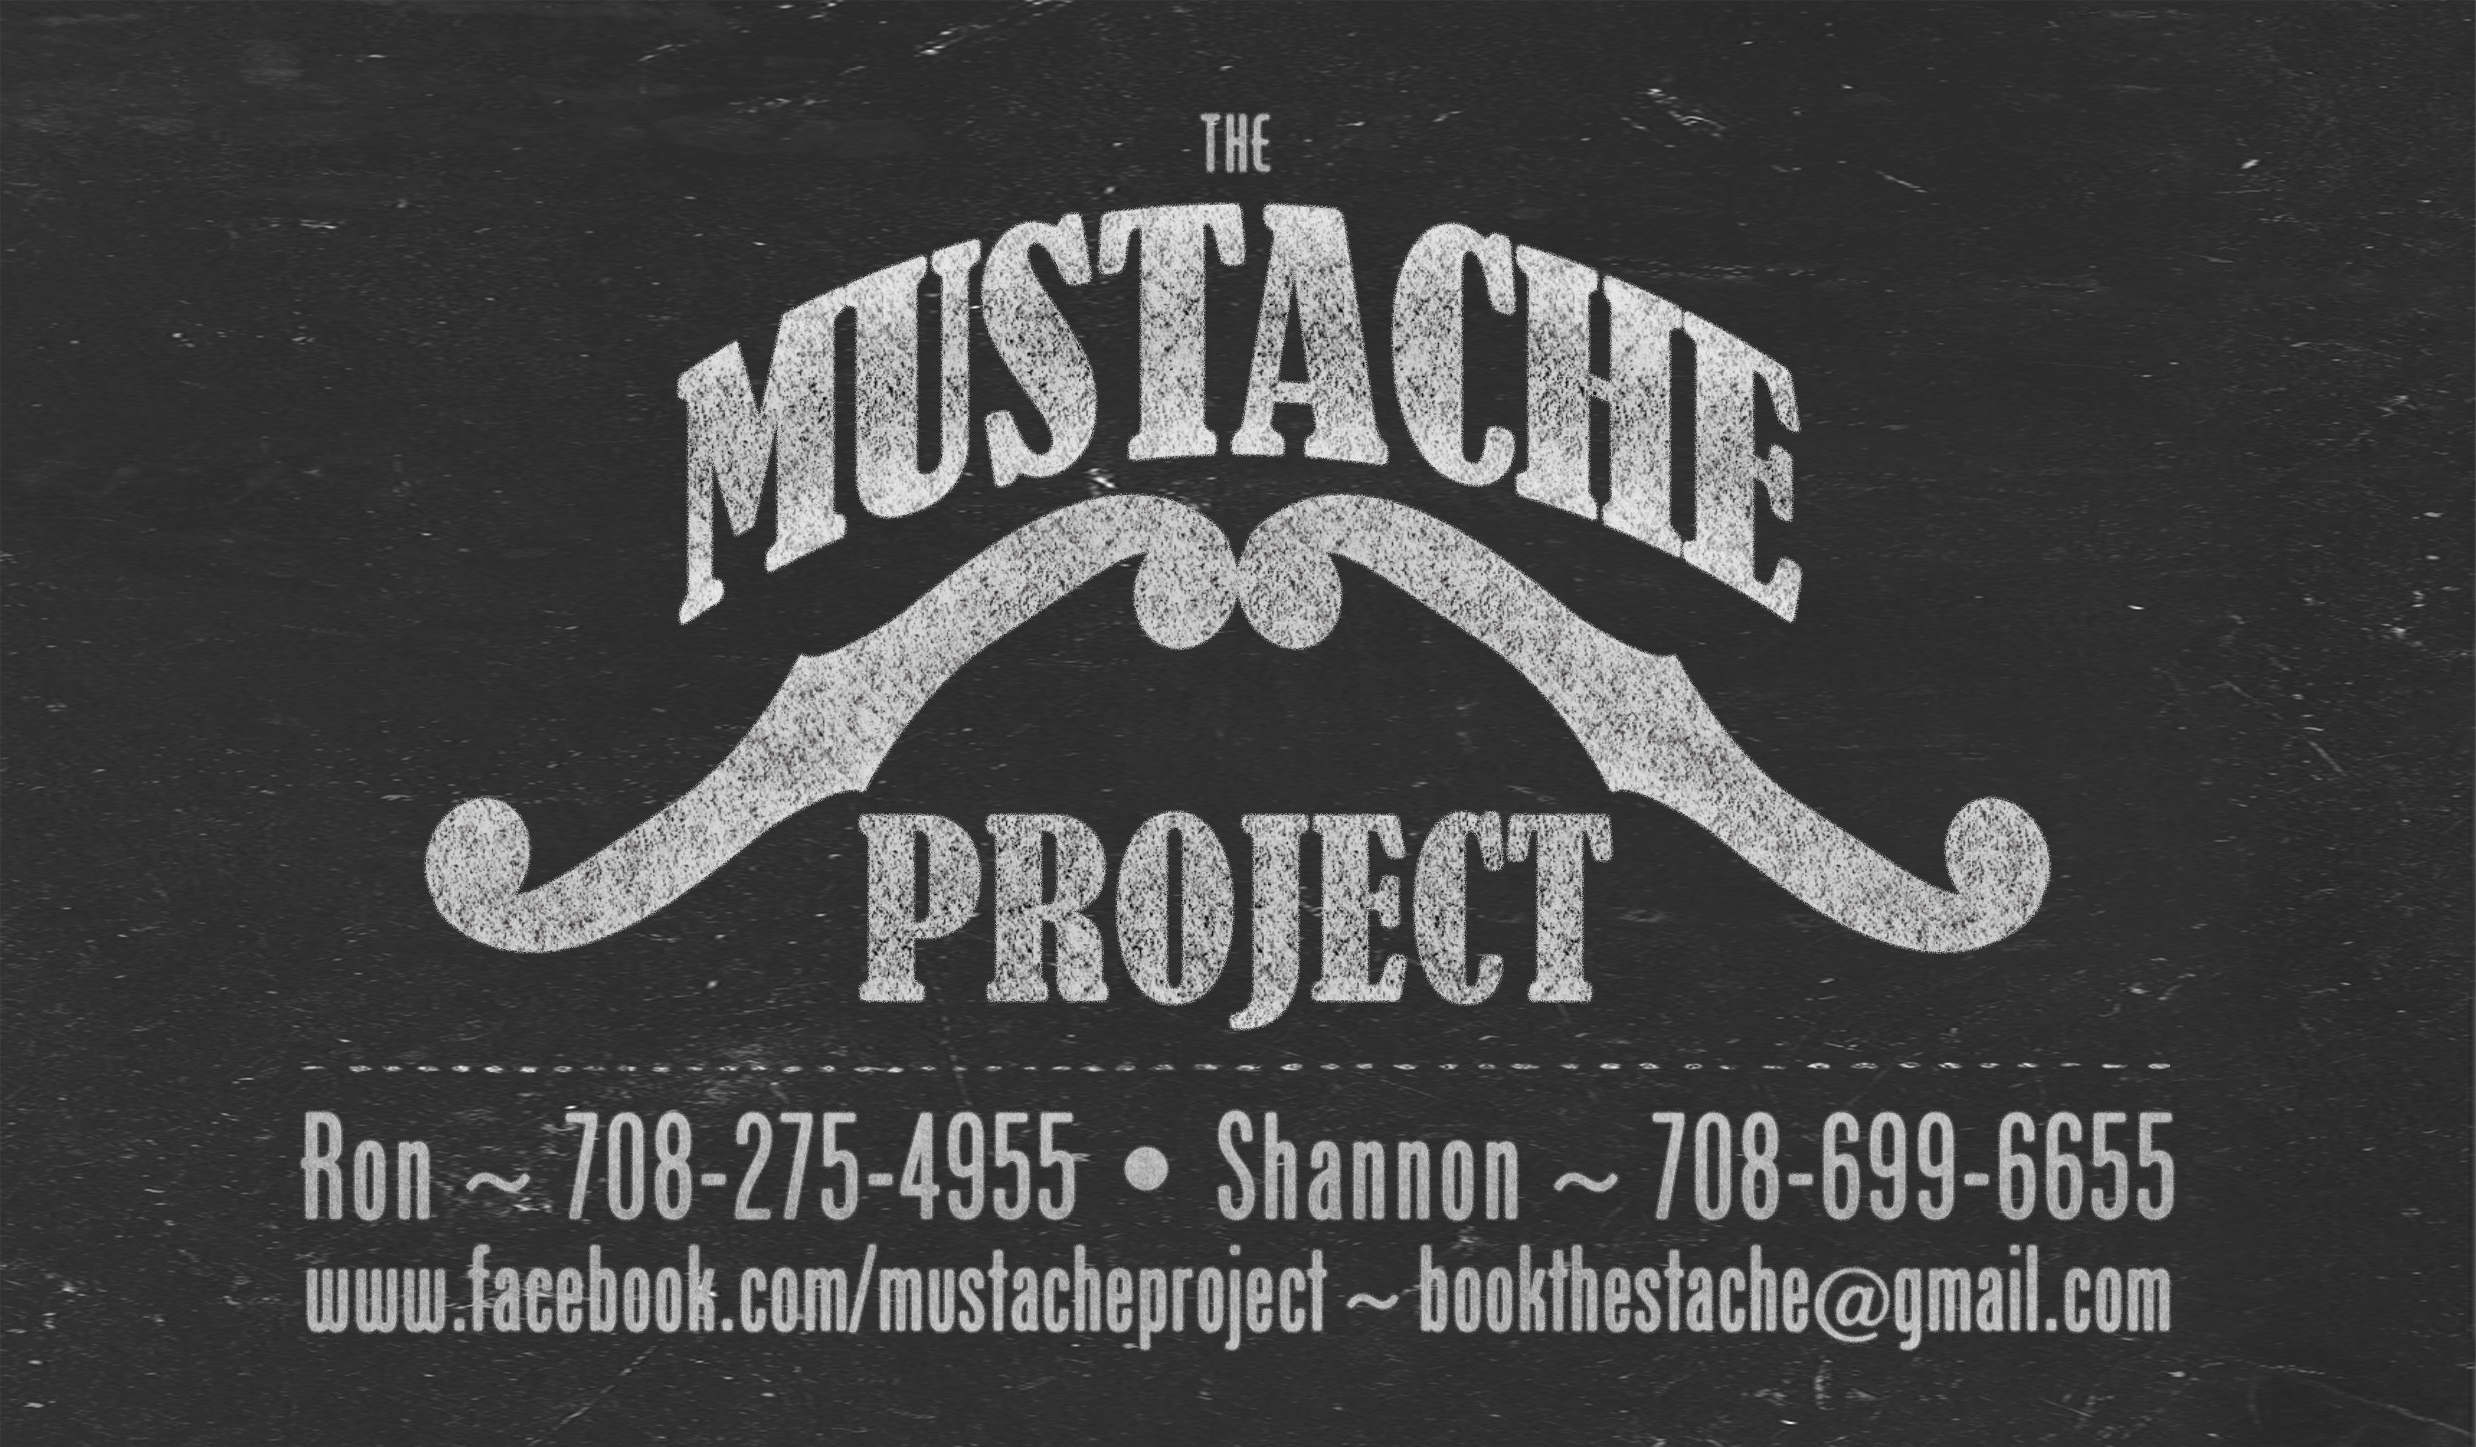 Mustache Project